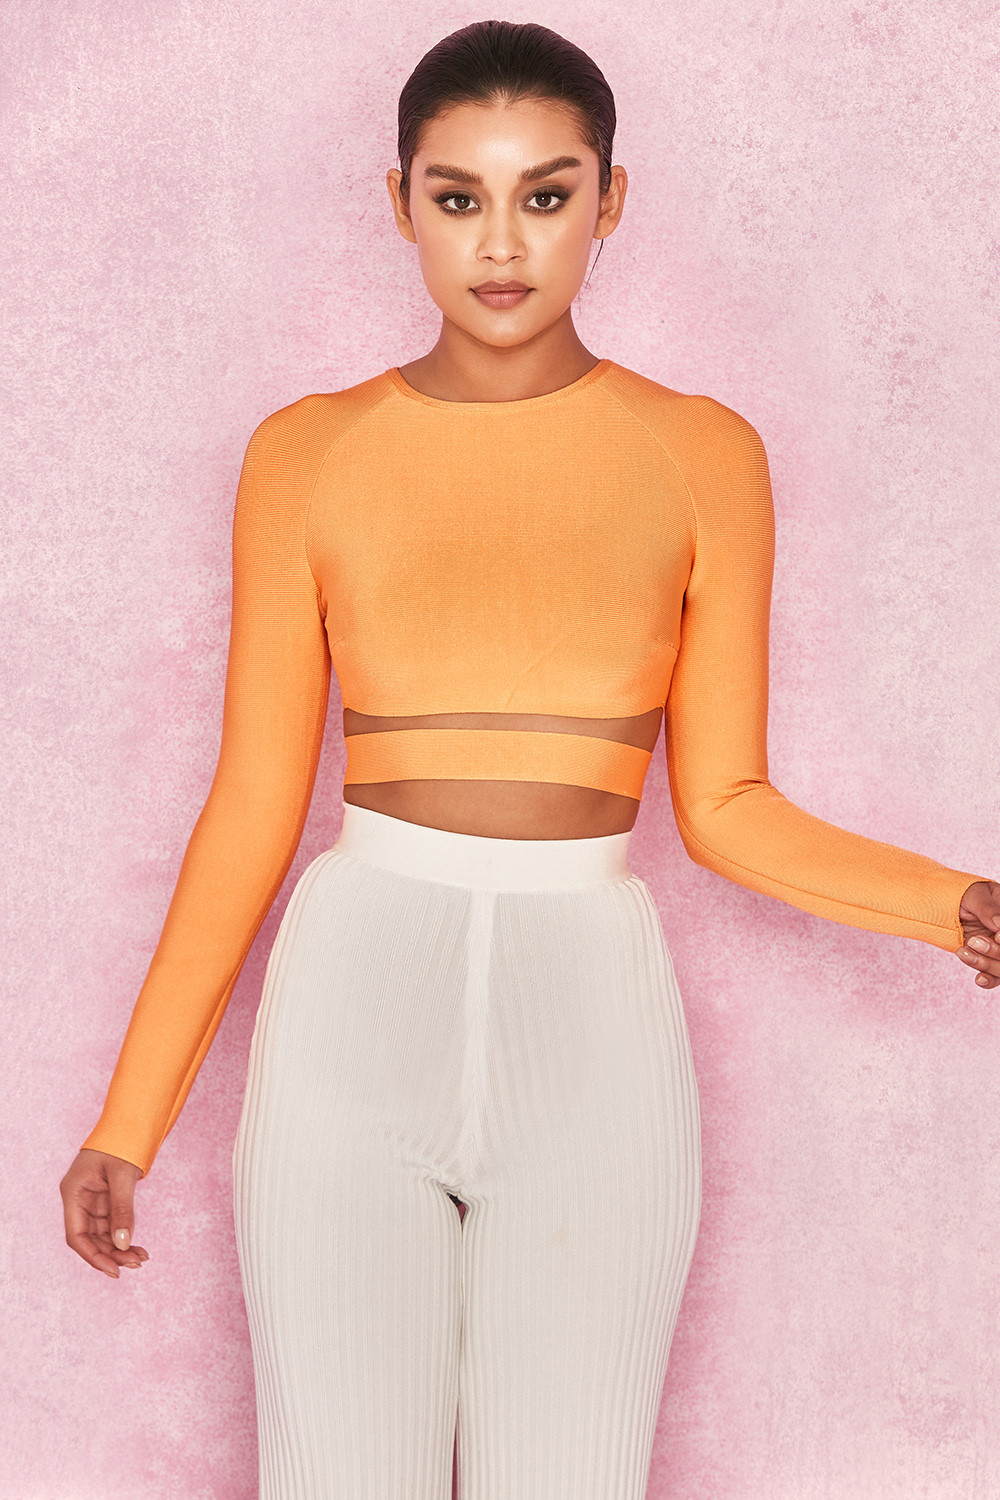 988301f707216 Clothing   Tops    Talika  Neon Orange Bandage Crop Top with Waistband